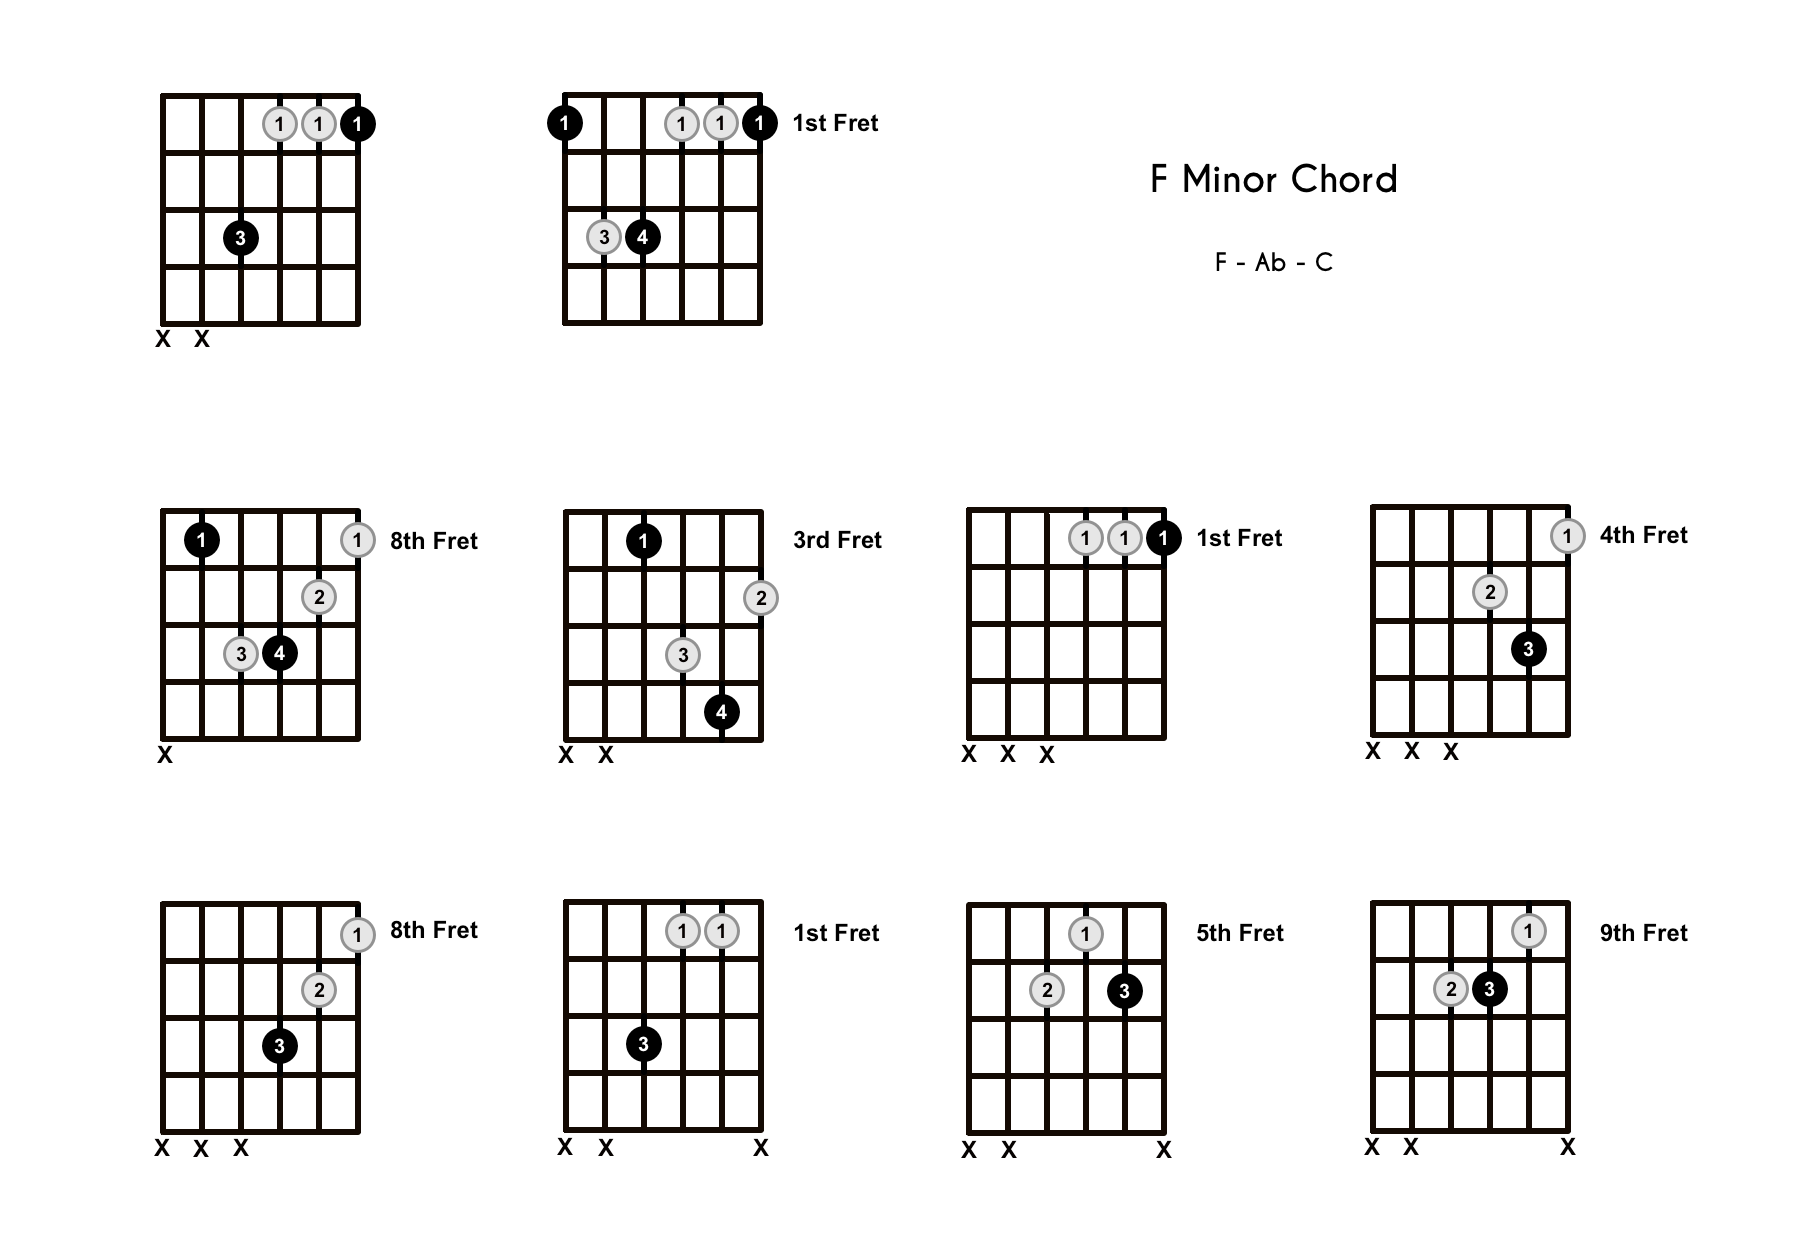 Fm Chord on the Guitar (F Minor) – Diagrams, Finger Positions, Theory